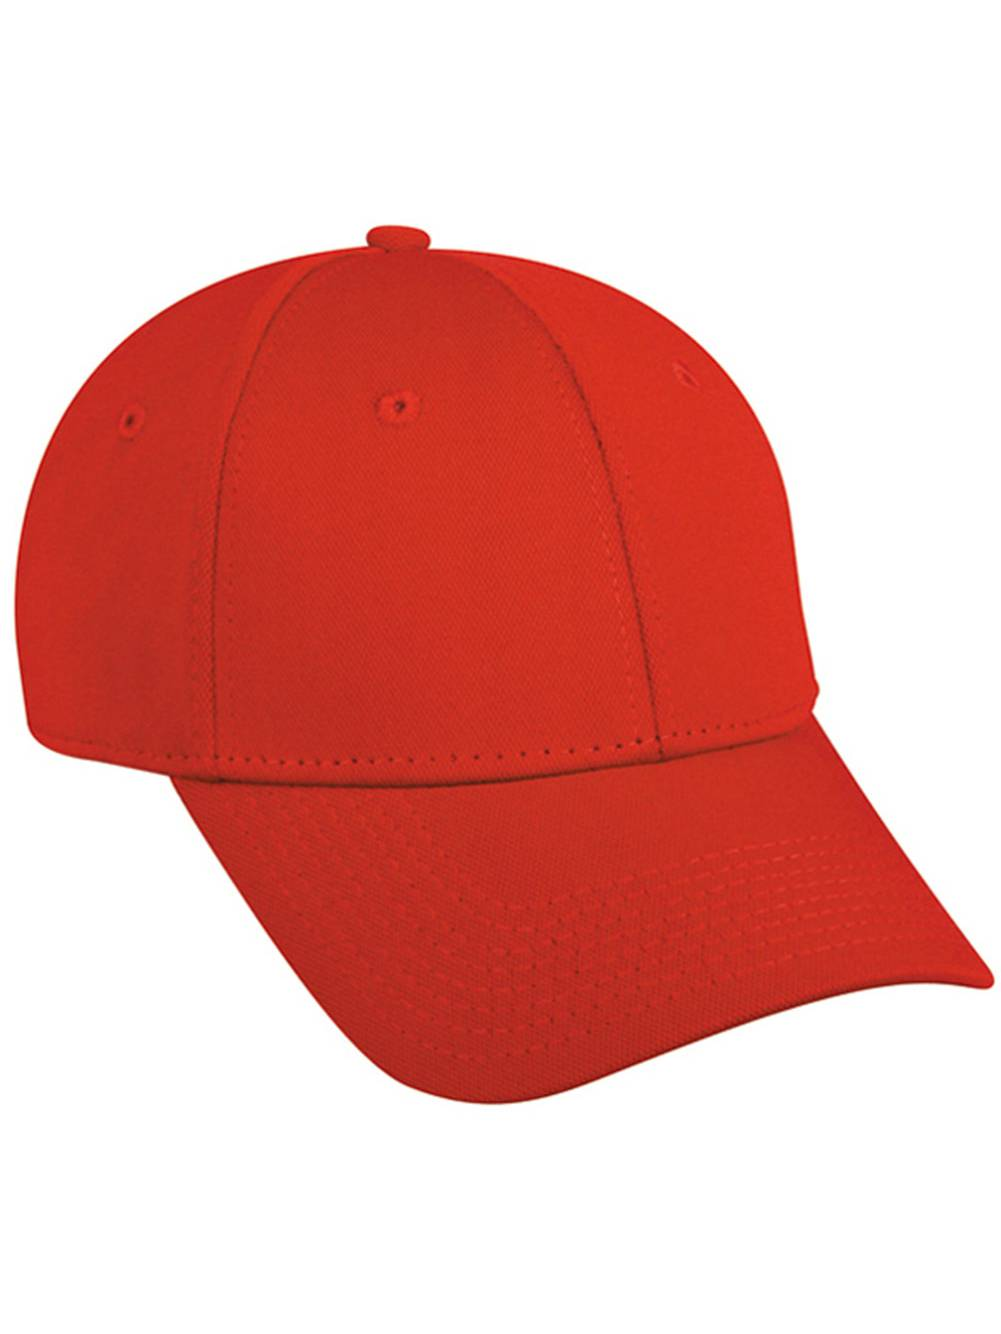 7909c7a29 Fit All Flex Fitted Hat Large- X Large, Red